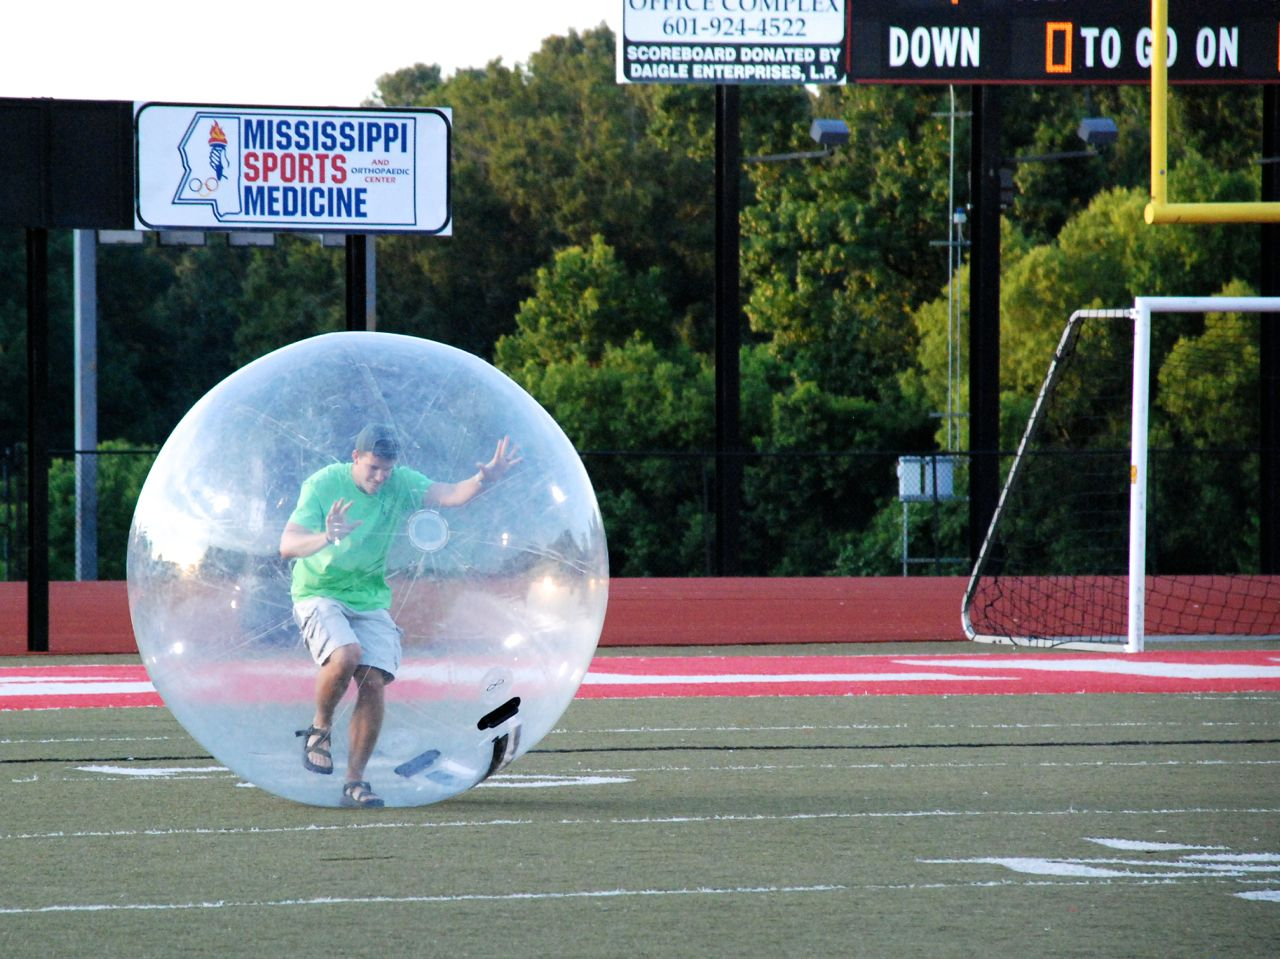 Ready for fun halftime events at Brilla soccer games again